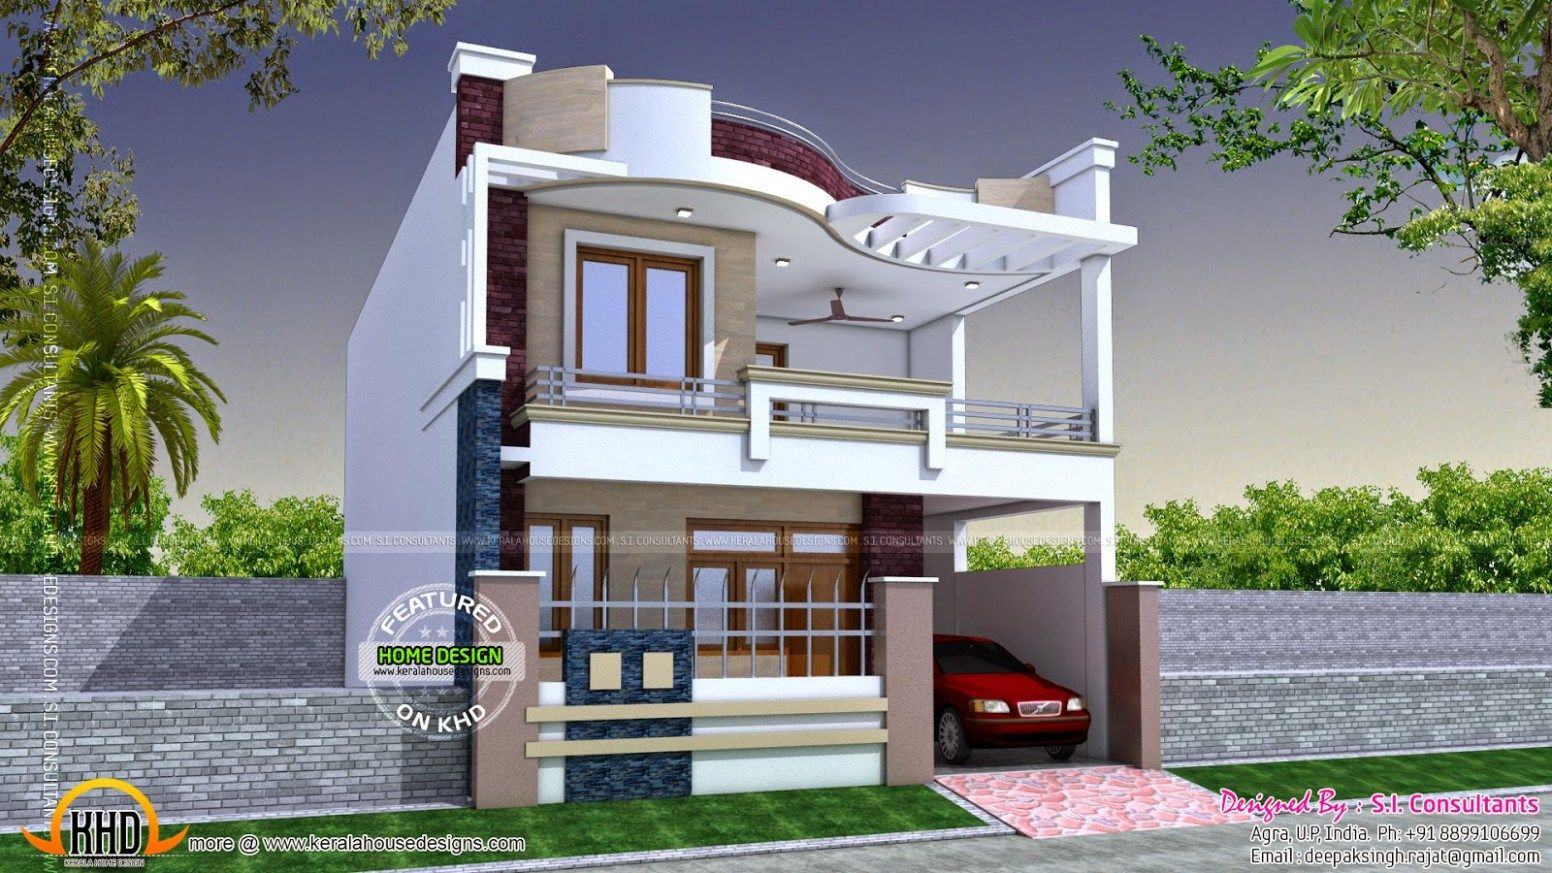 The Biggest Contribution Of Home Design Photo To Humanity Home Design Photo Https Ift Modern Bungalow House Modern Bungalow House Plans Simple House Design